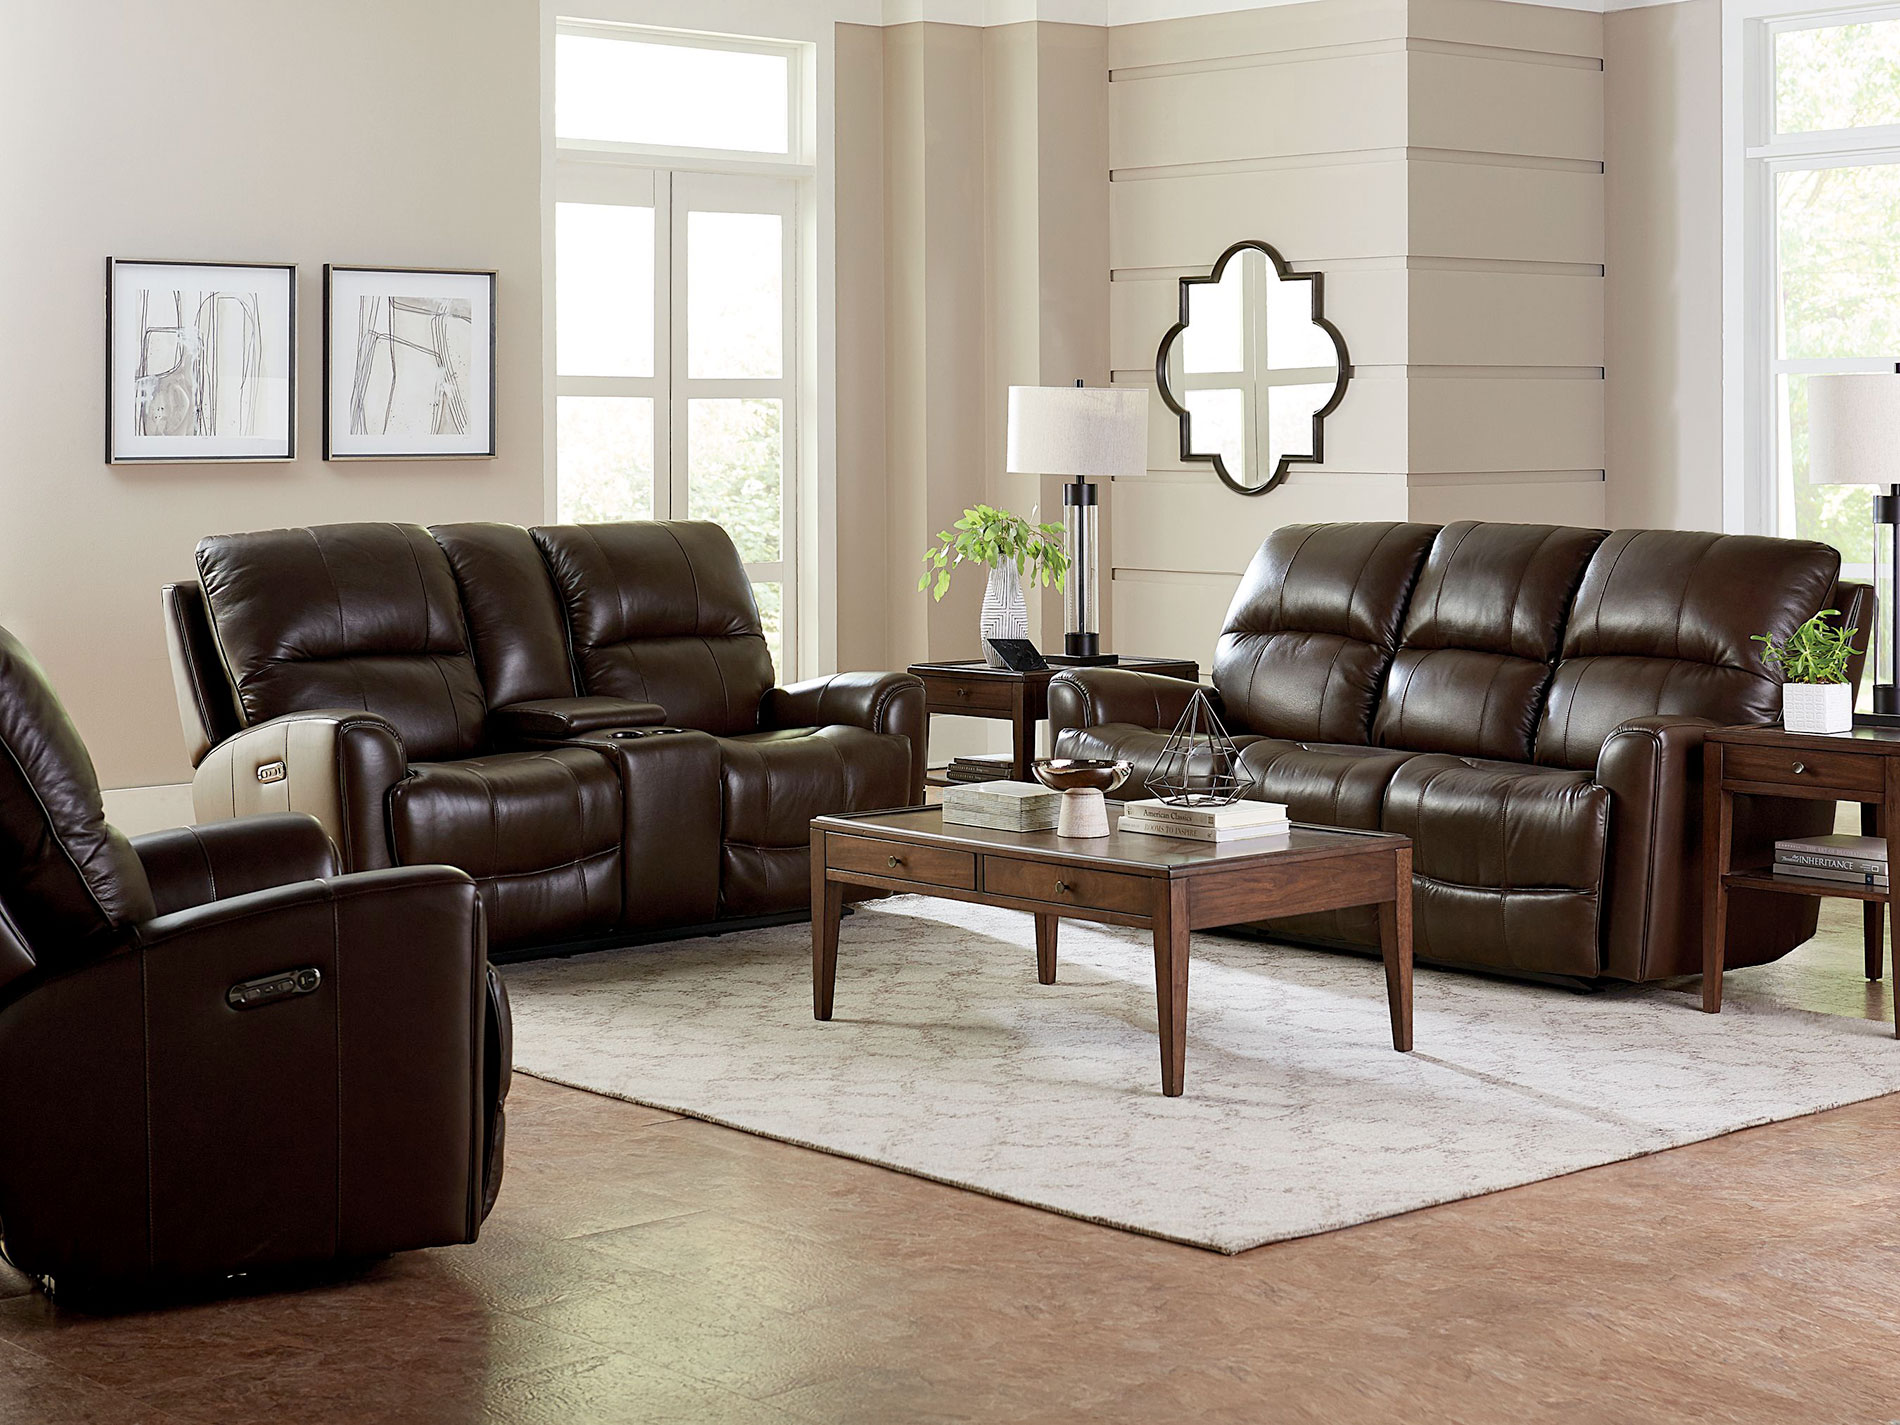 Club Level By Bassett   Bassett Furniture